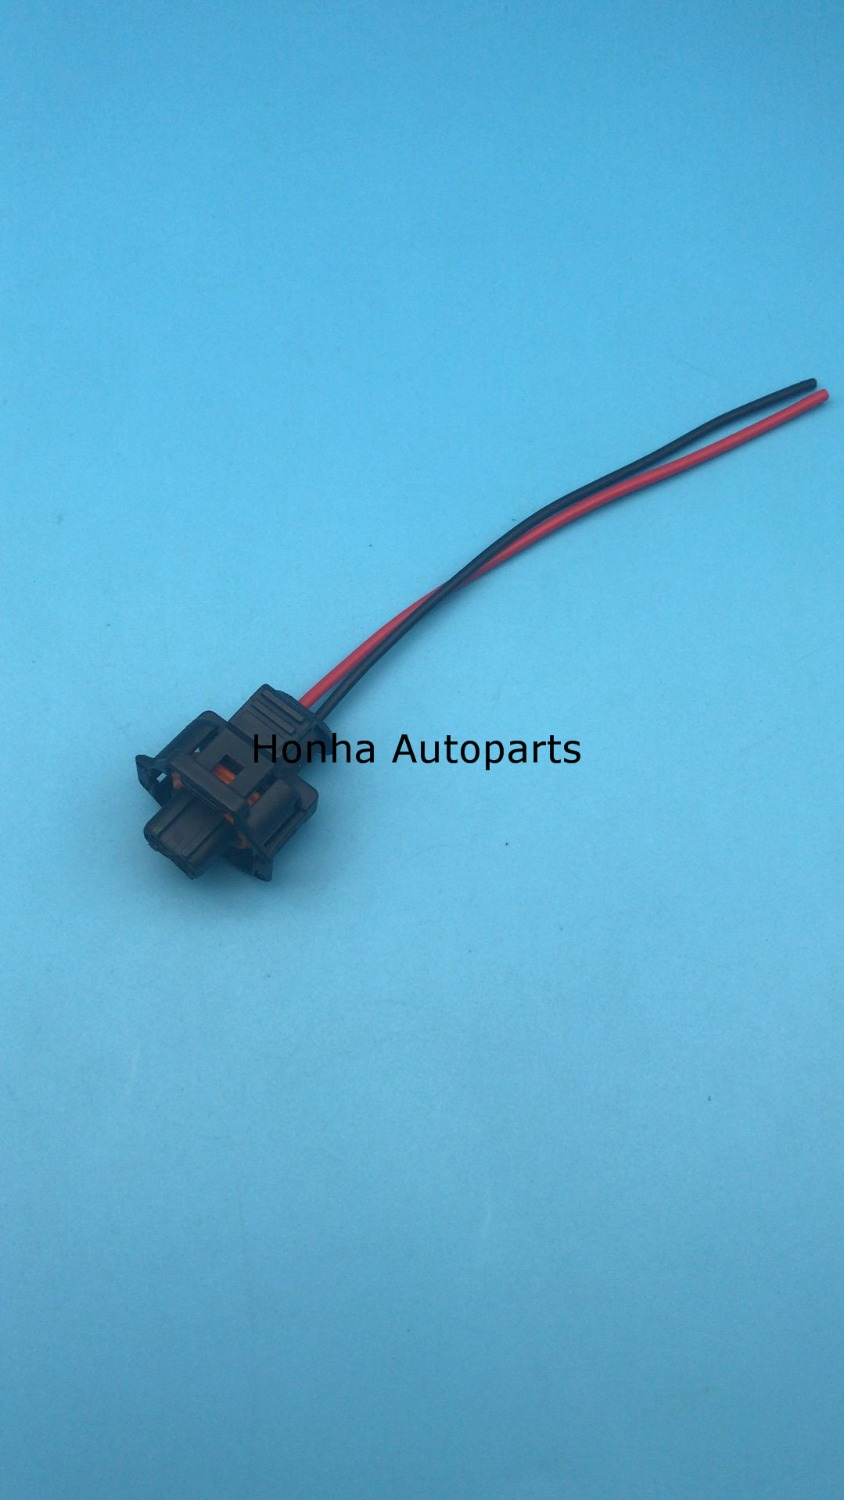 2 Pin Way Female Waterproof Connector Wire Harness With 15cm 18awg Bosch For In Cables Adapters Sockets From Automobiles Motorcycles On